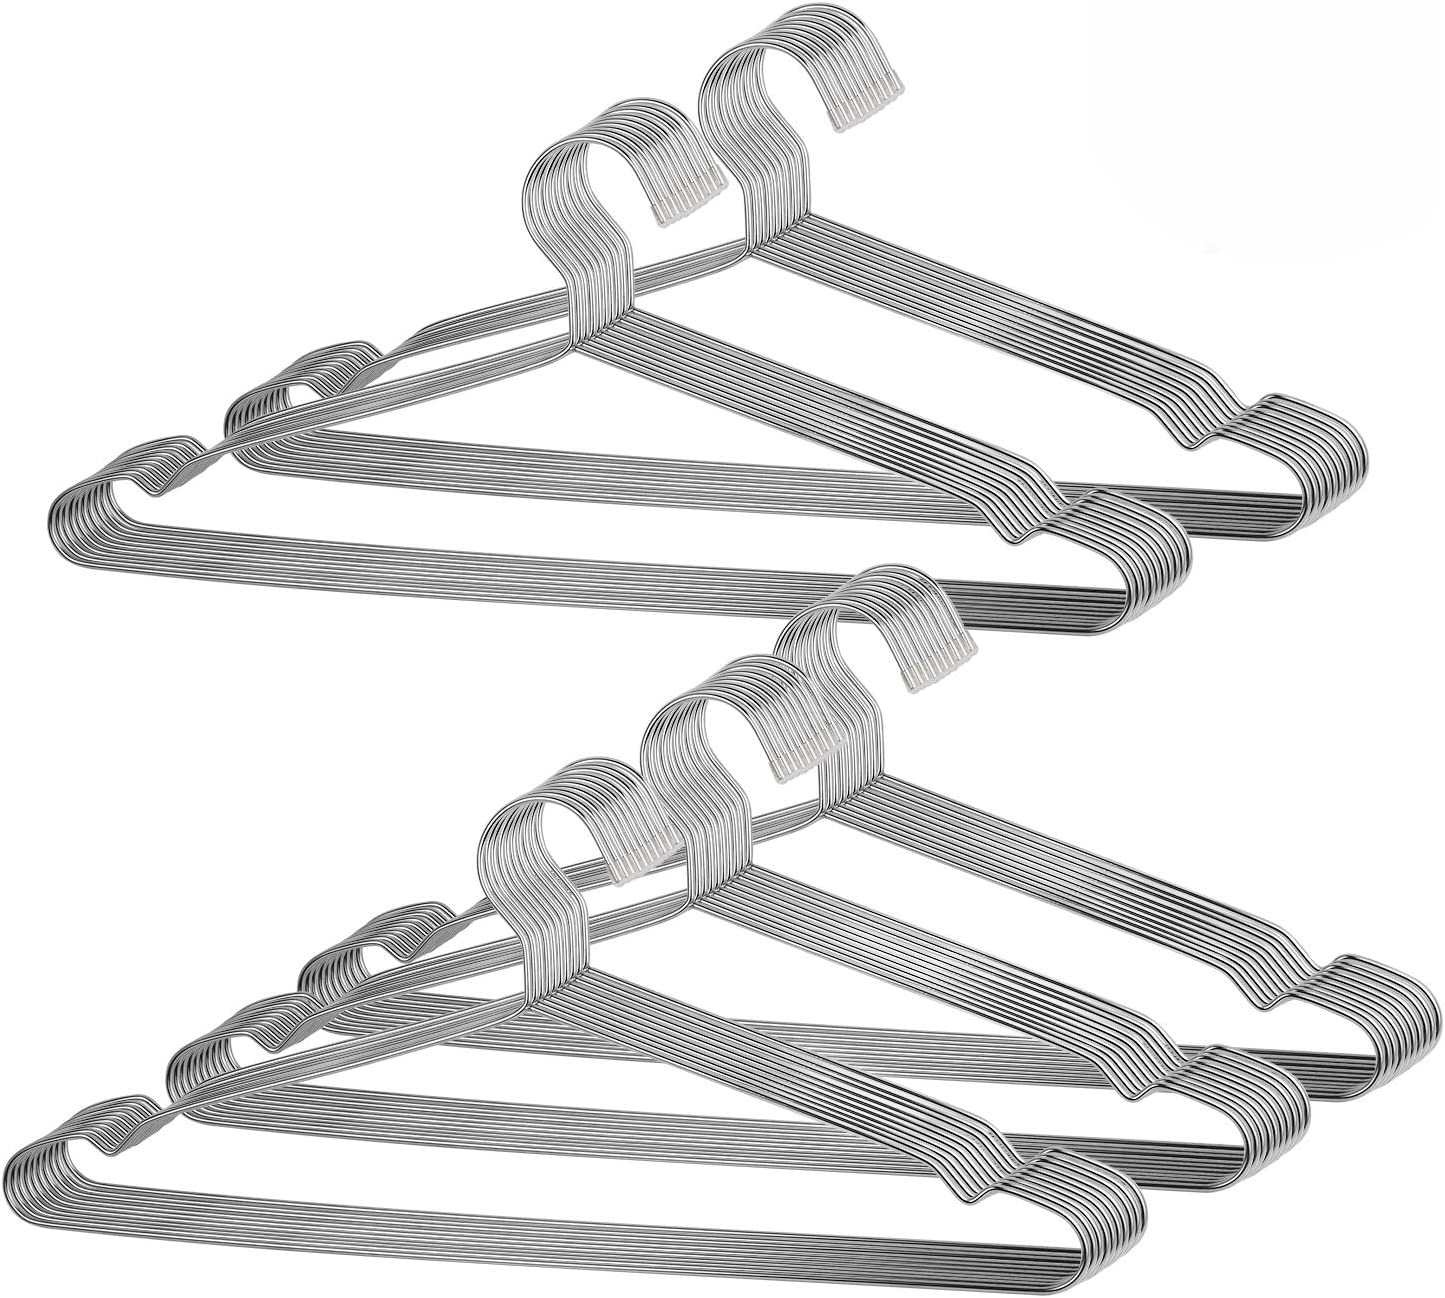 New products world's highest quality popular price KINJOEK 50 Packs Wire Hangers Stainless Steel Clothes for 16.6